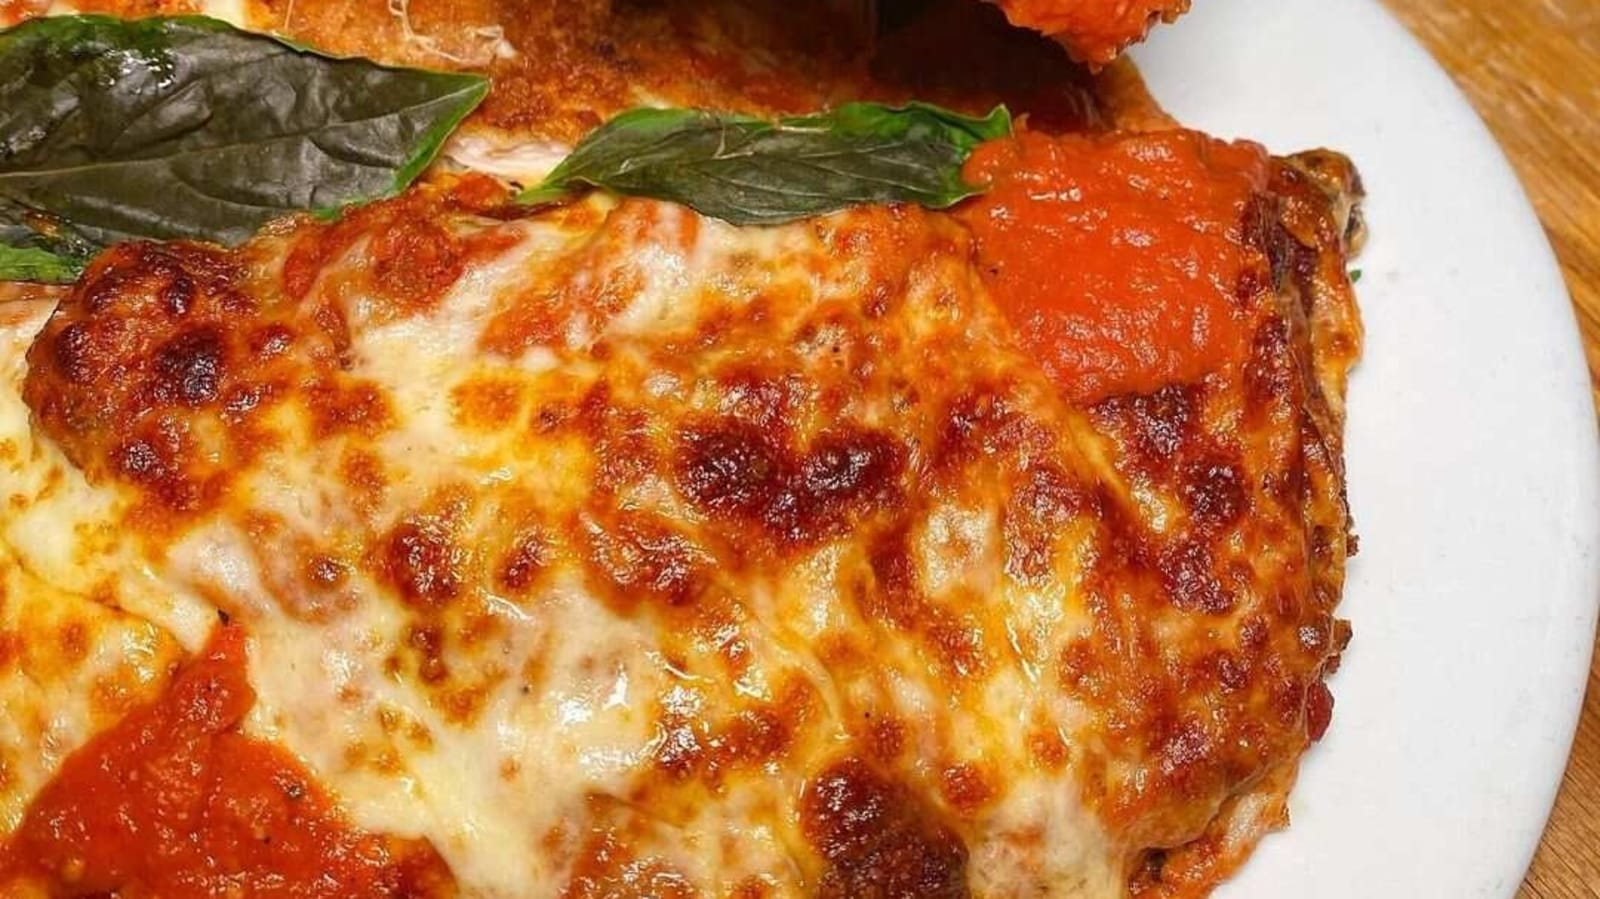 Try out this yummy Italian Chicken Parmigiana recipe oozing with cheesy goodness